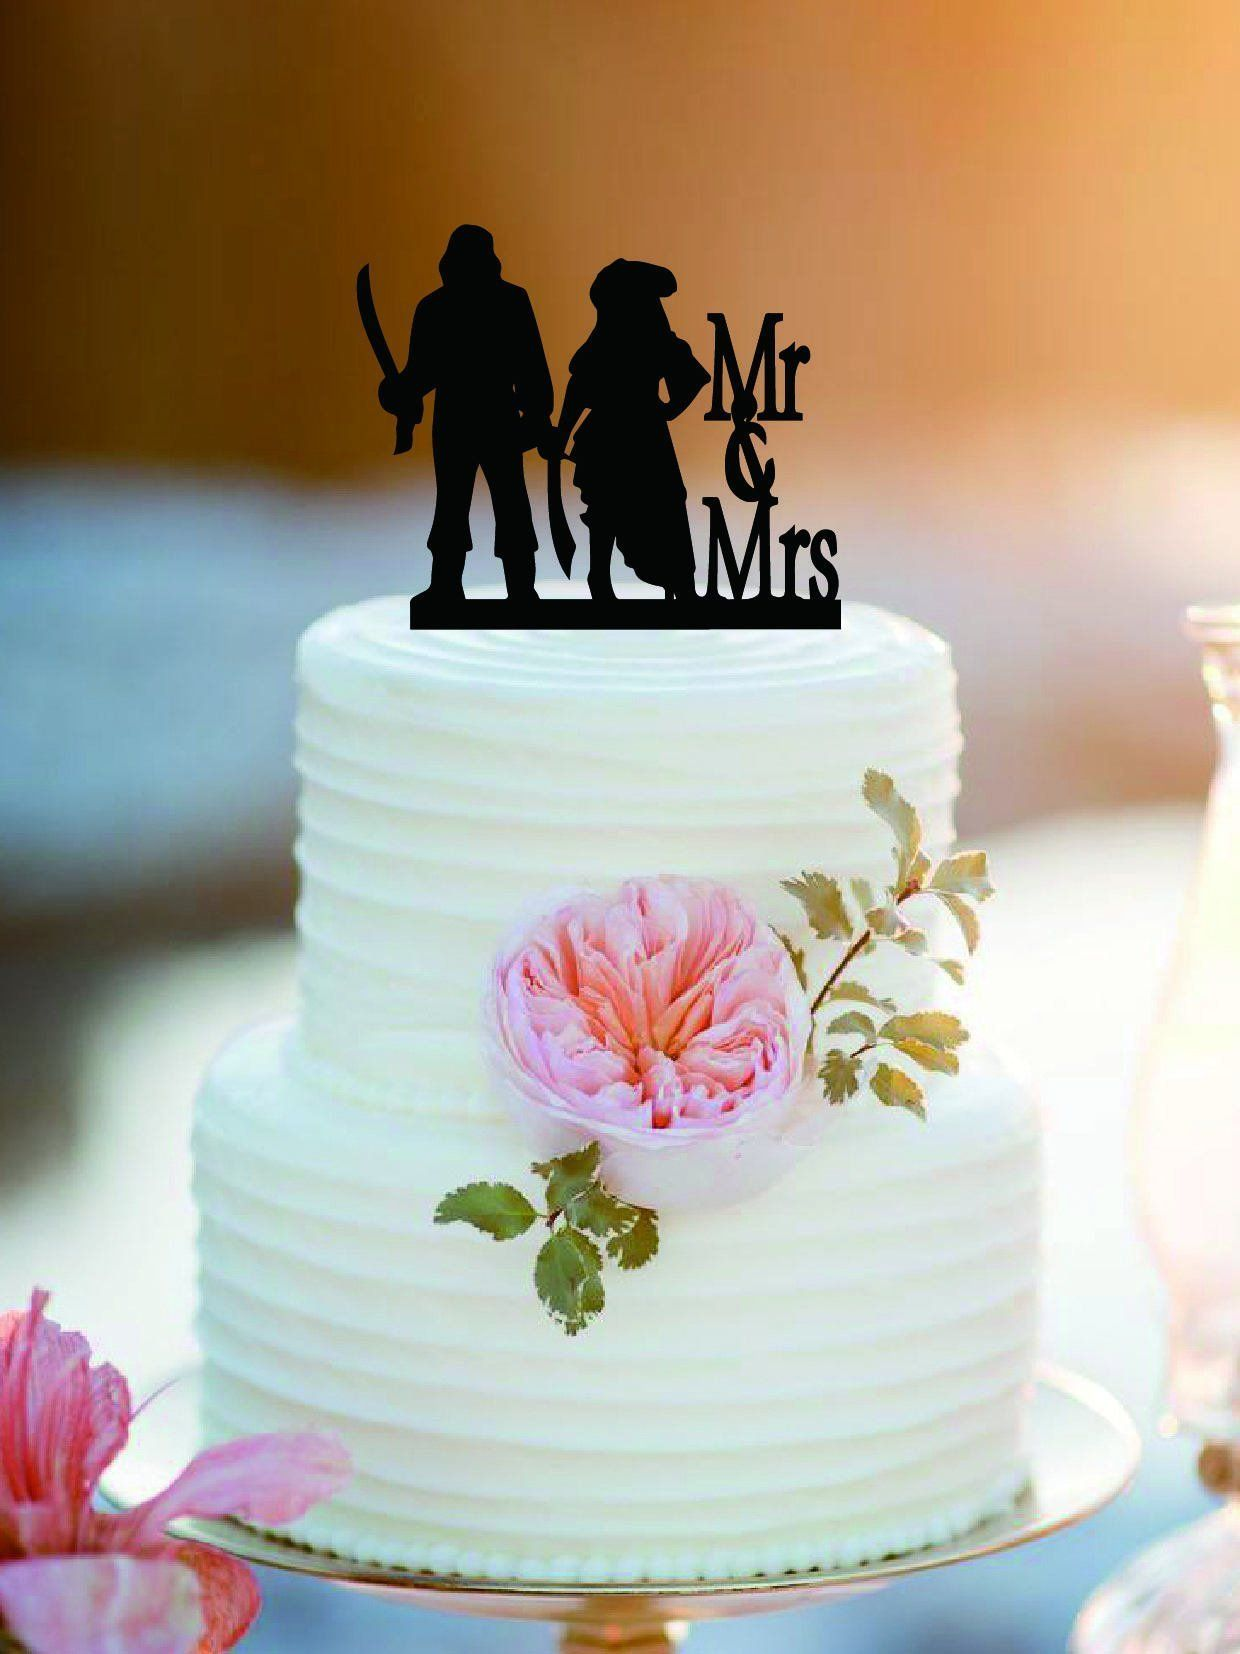 Customized pirate mr and mrs wedding cake topper personlized bride